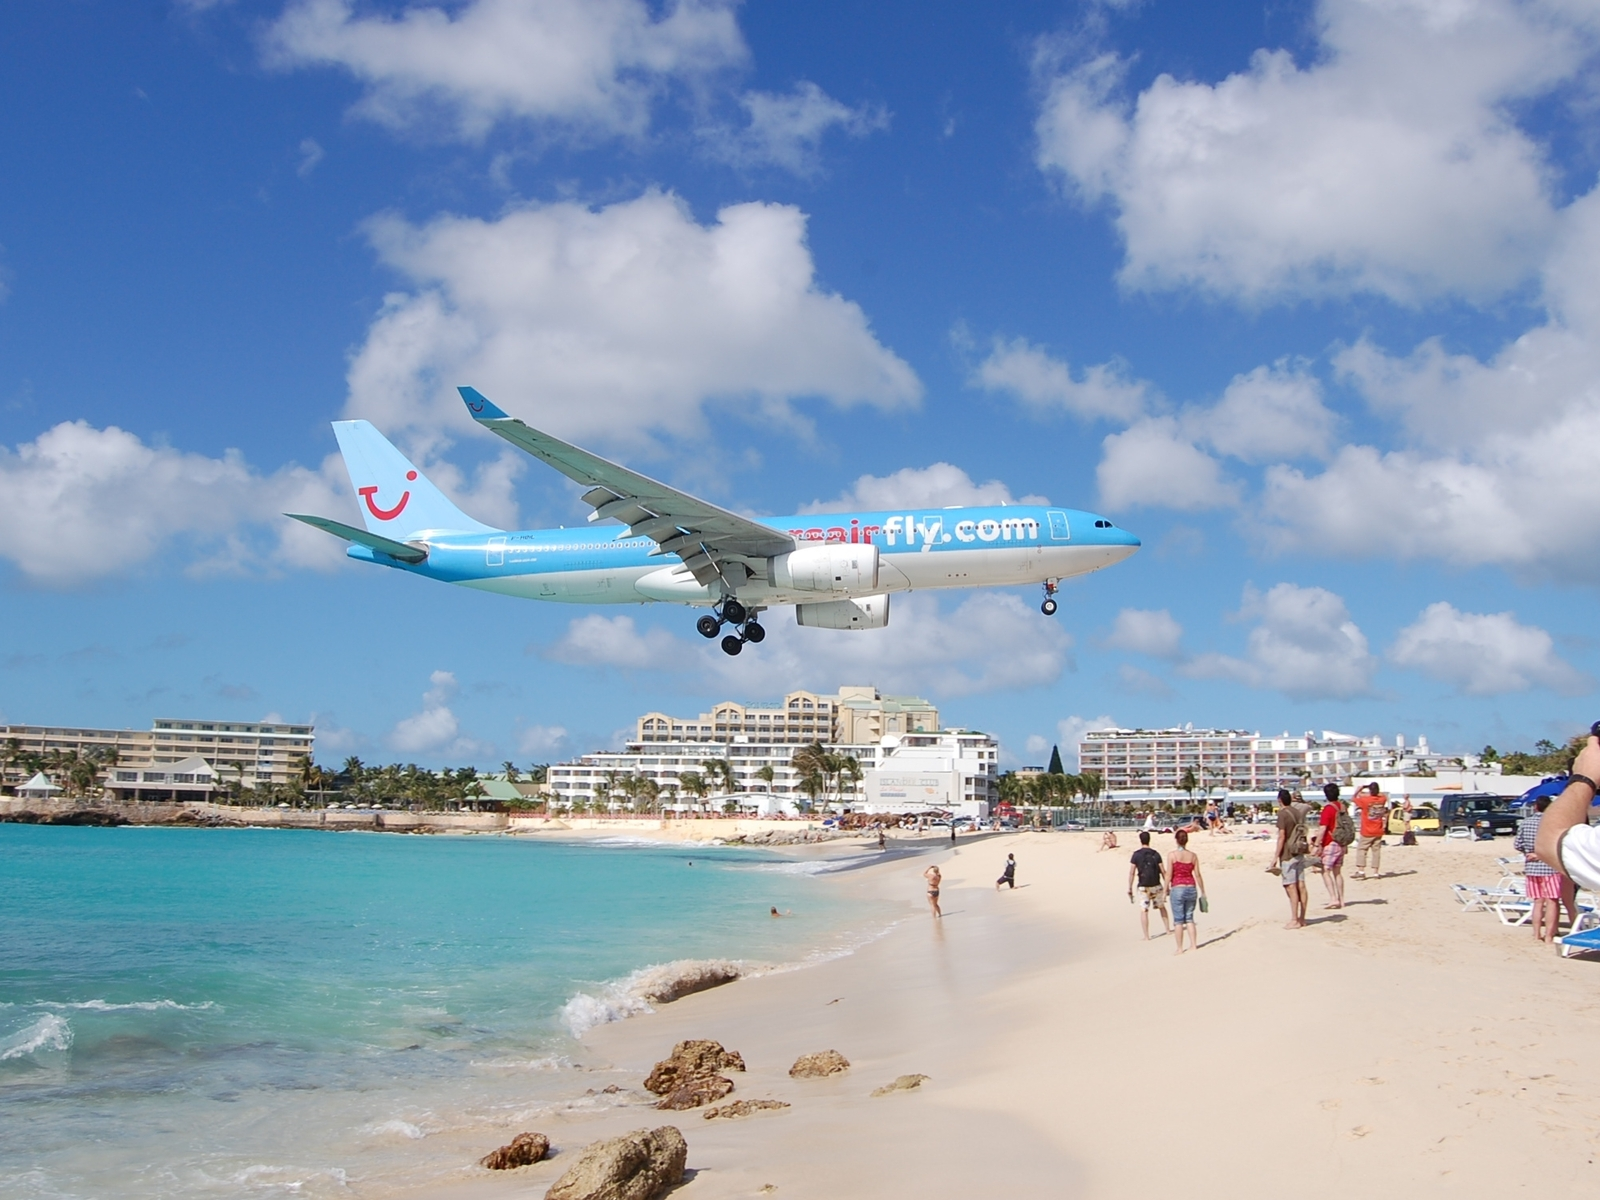 Airplane above the beach